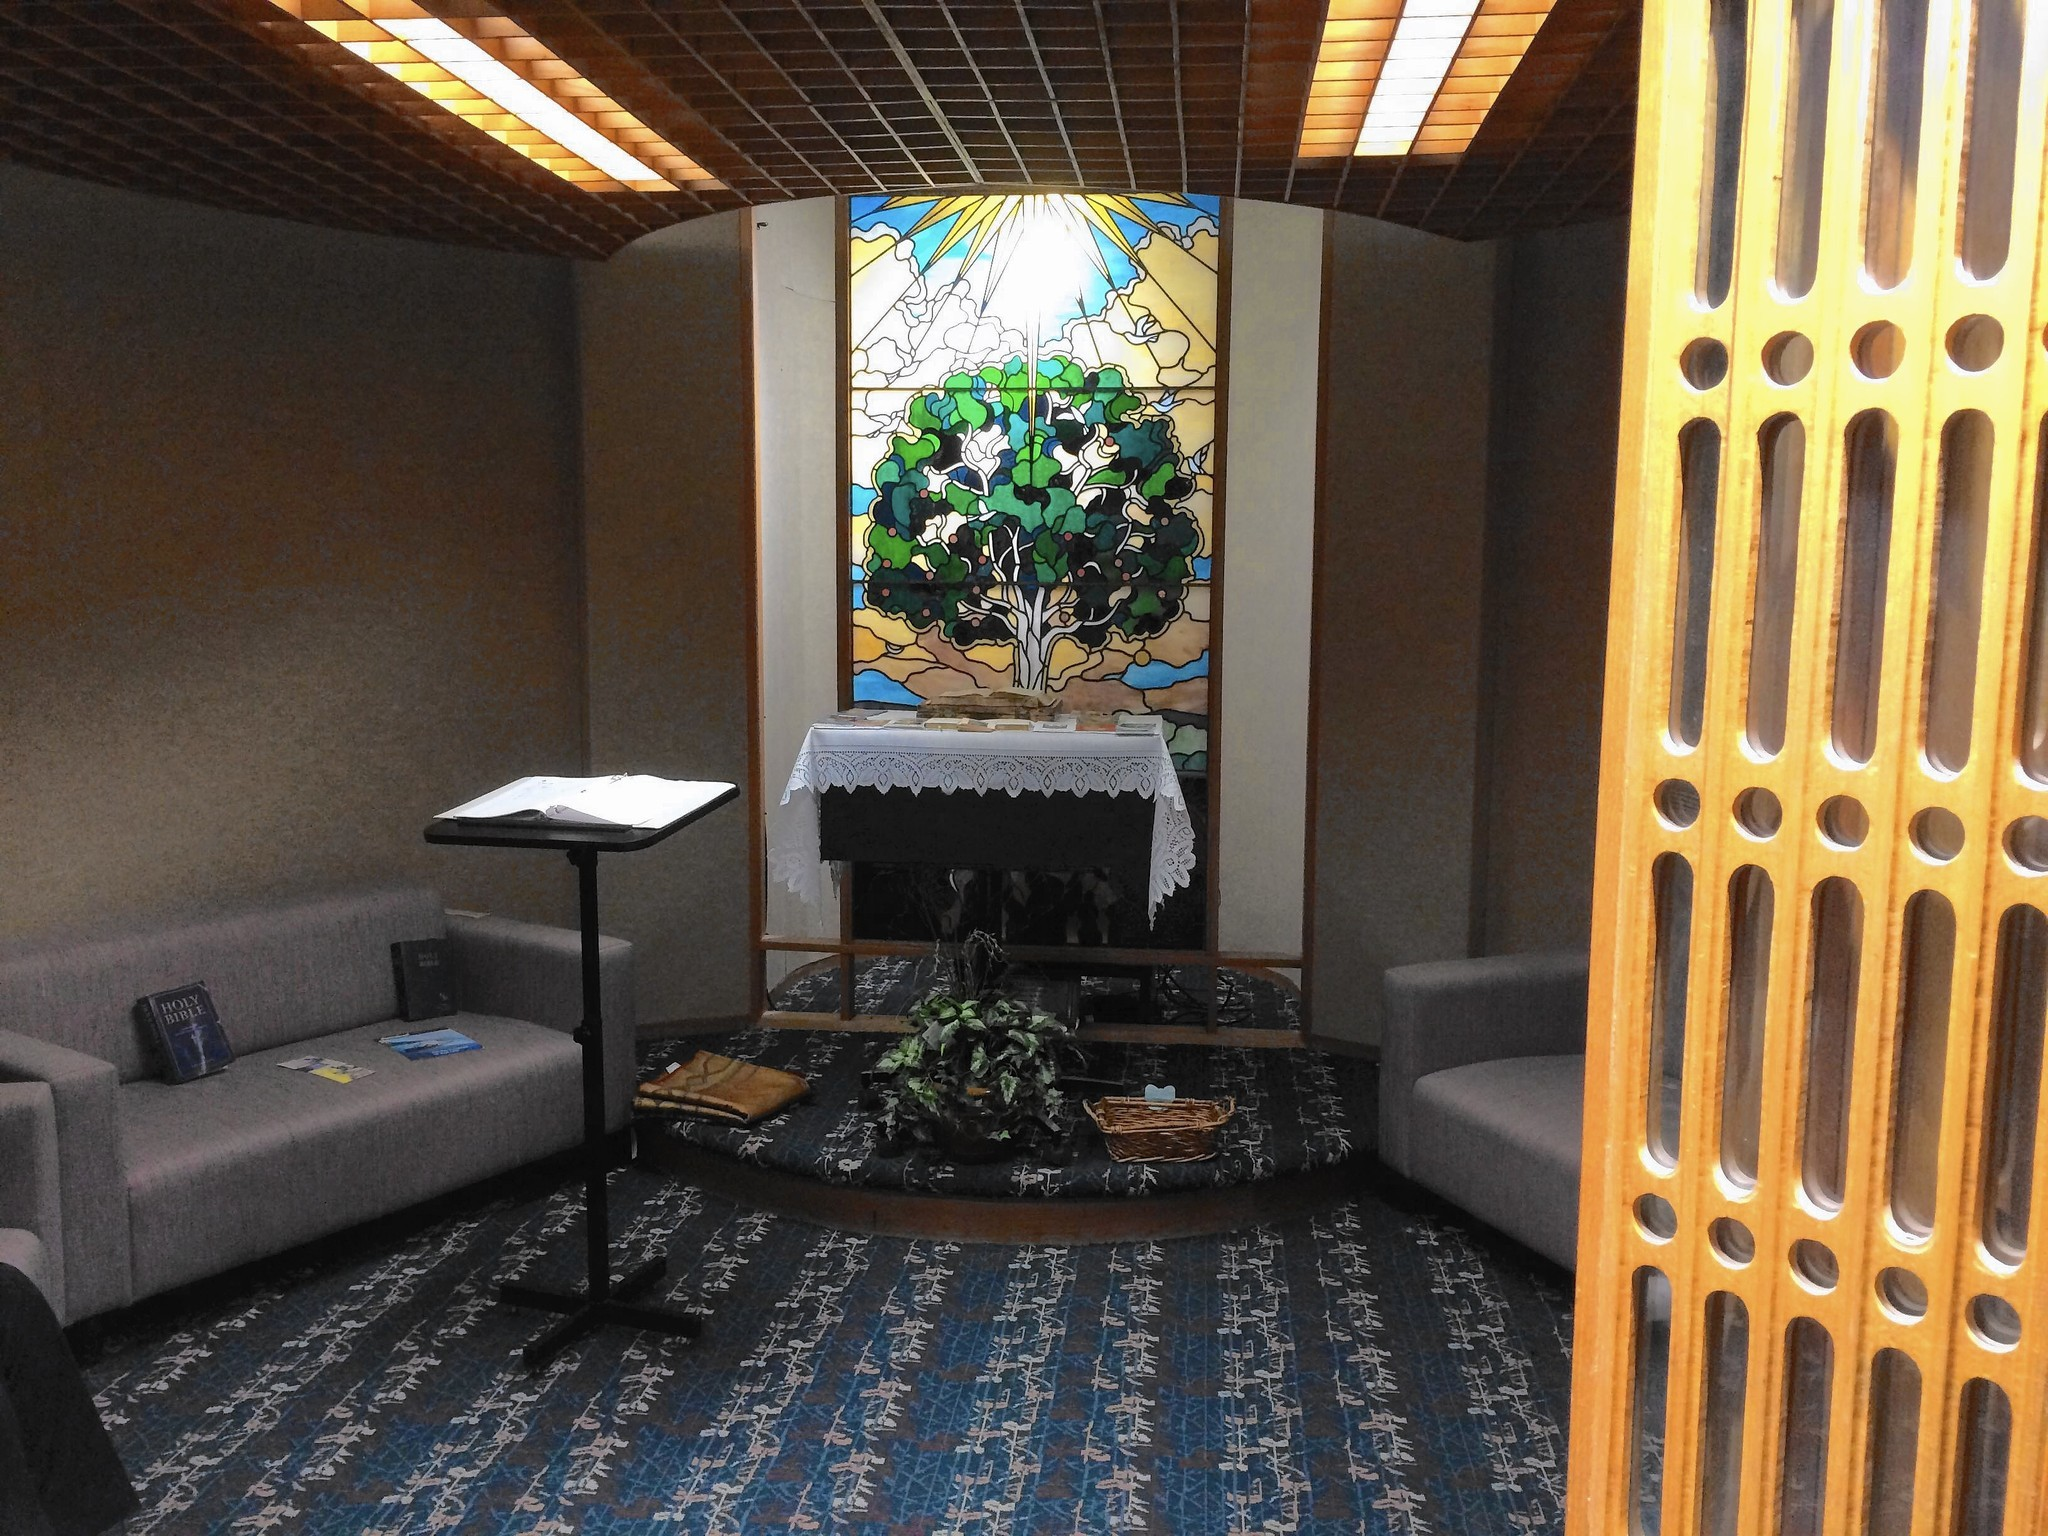 Orlando International Opening Reflection Room For Muslim